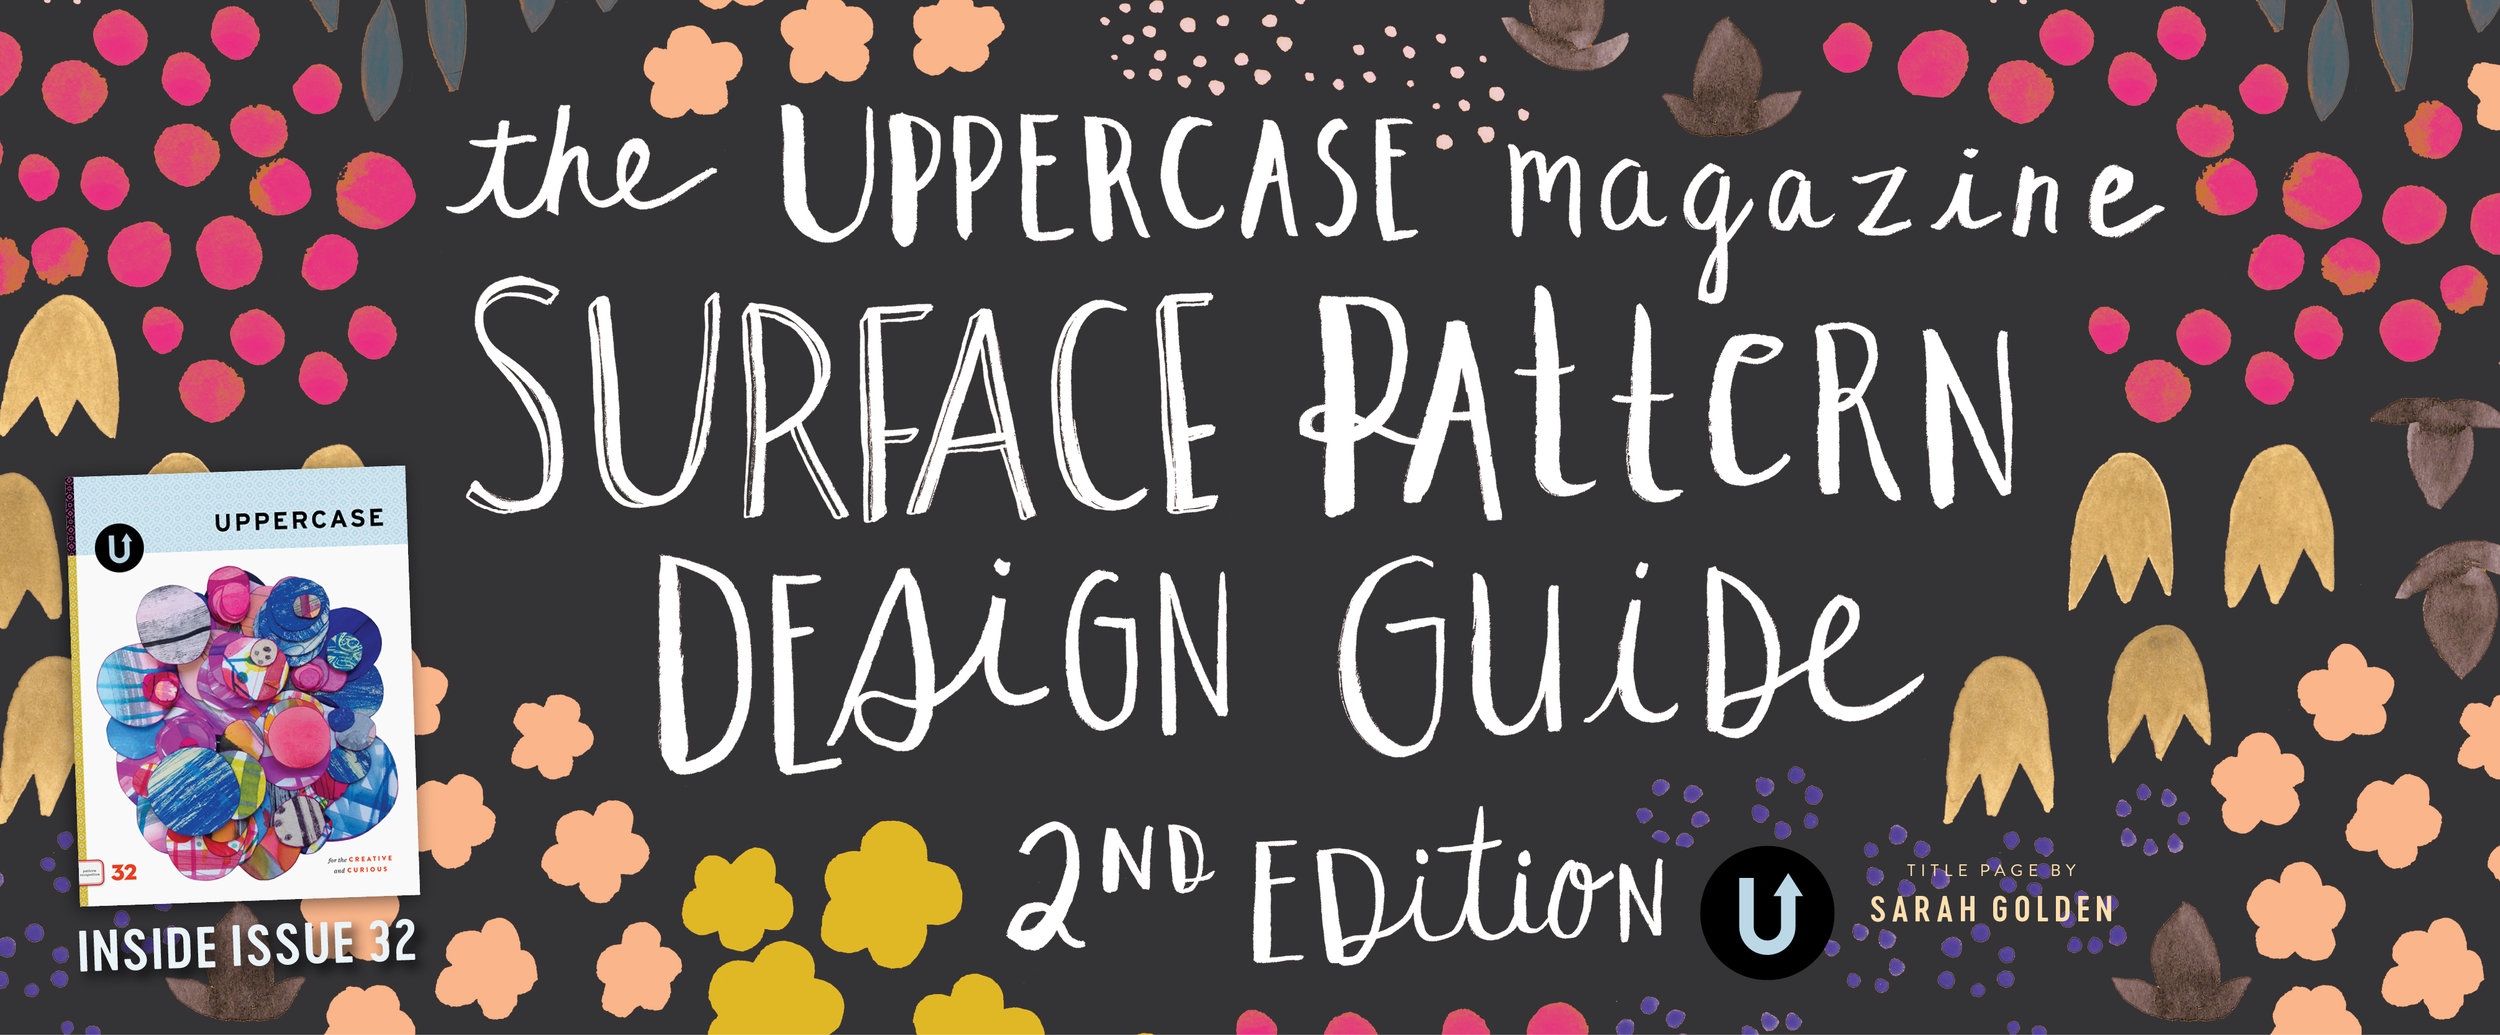 The Surface Pattern Design Guide cover featuring the floral and hand lettering above was created by the talented Sarah Golden.